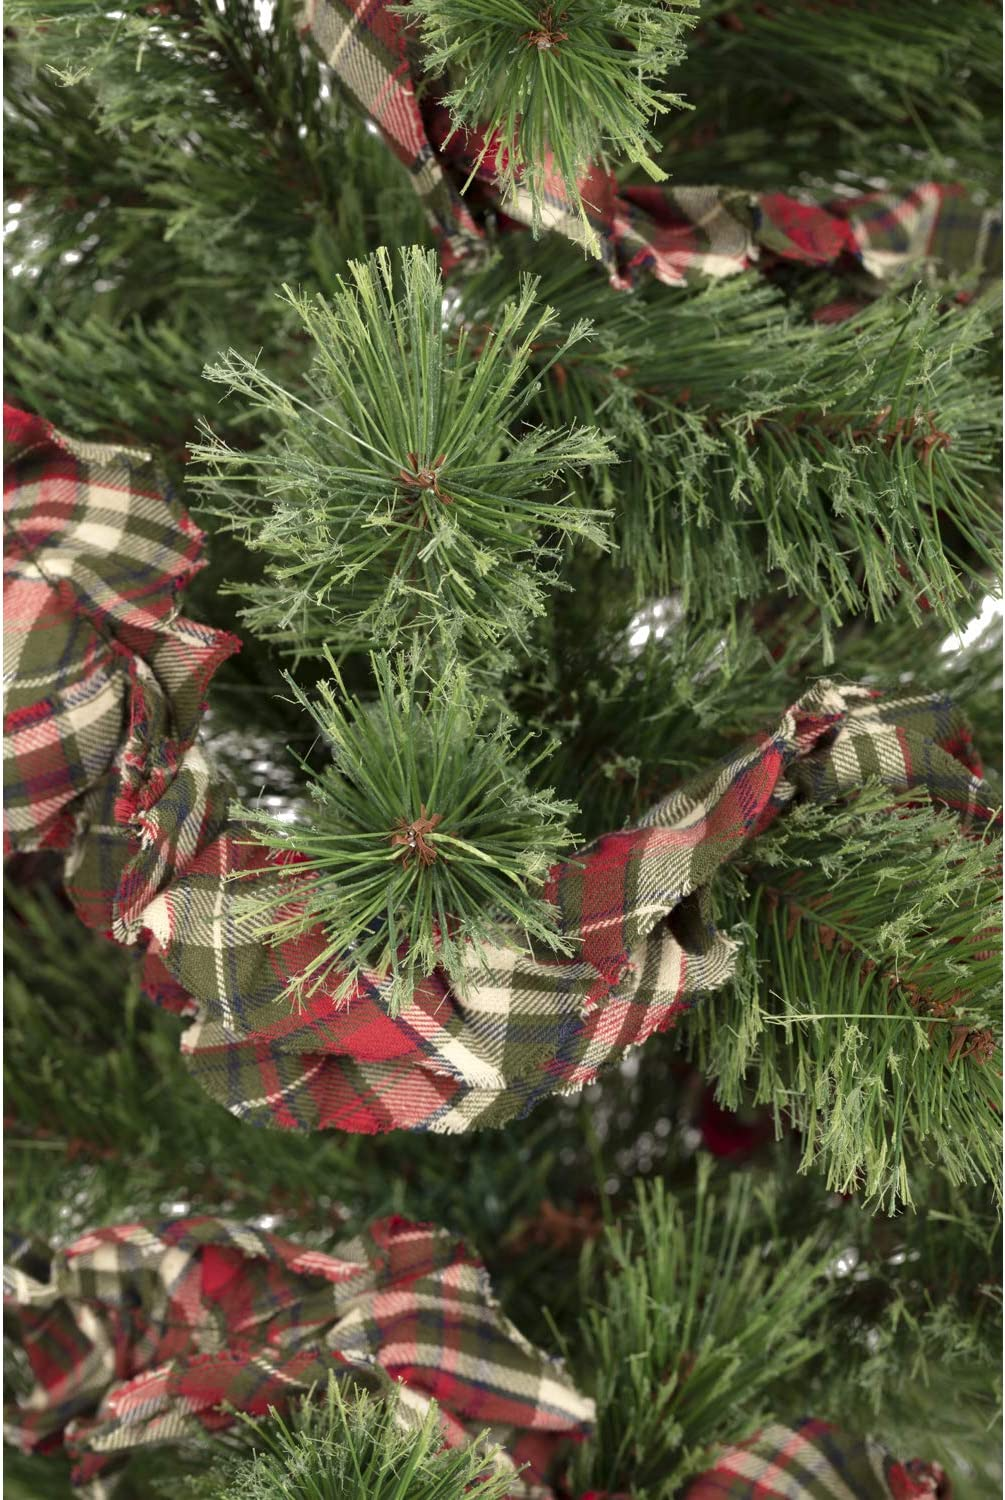 VHC Brands Rustic & Lodge Holiday Christmas Decor - Forreston Rag Garland Set of 3, 9 ft, Plaid